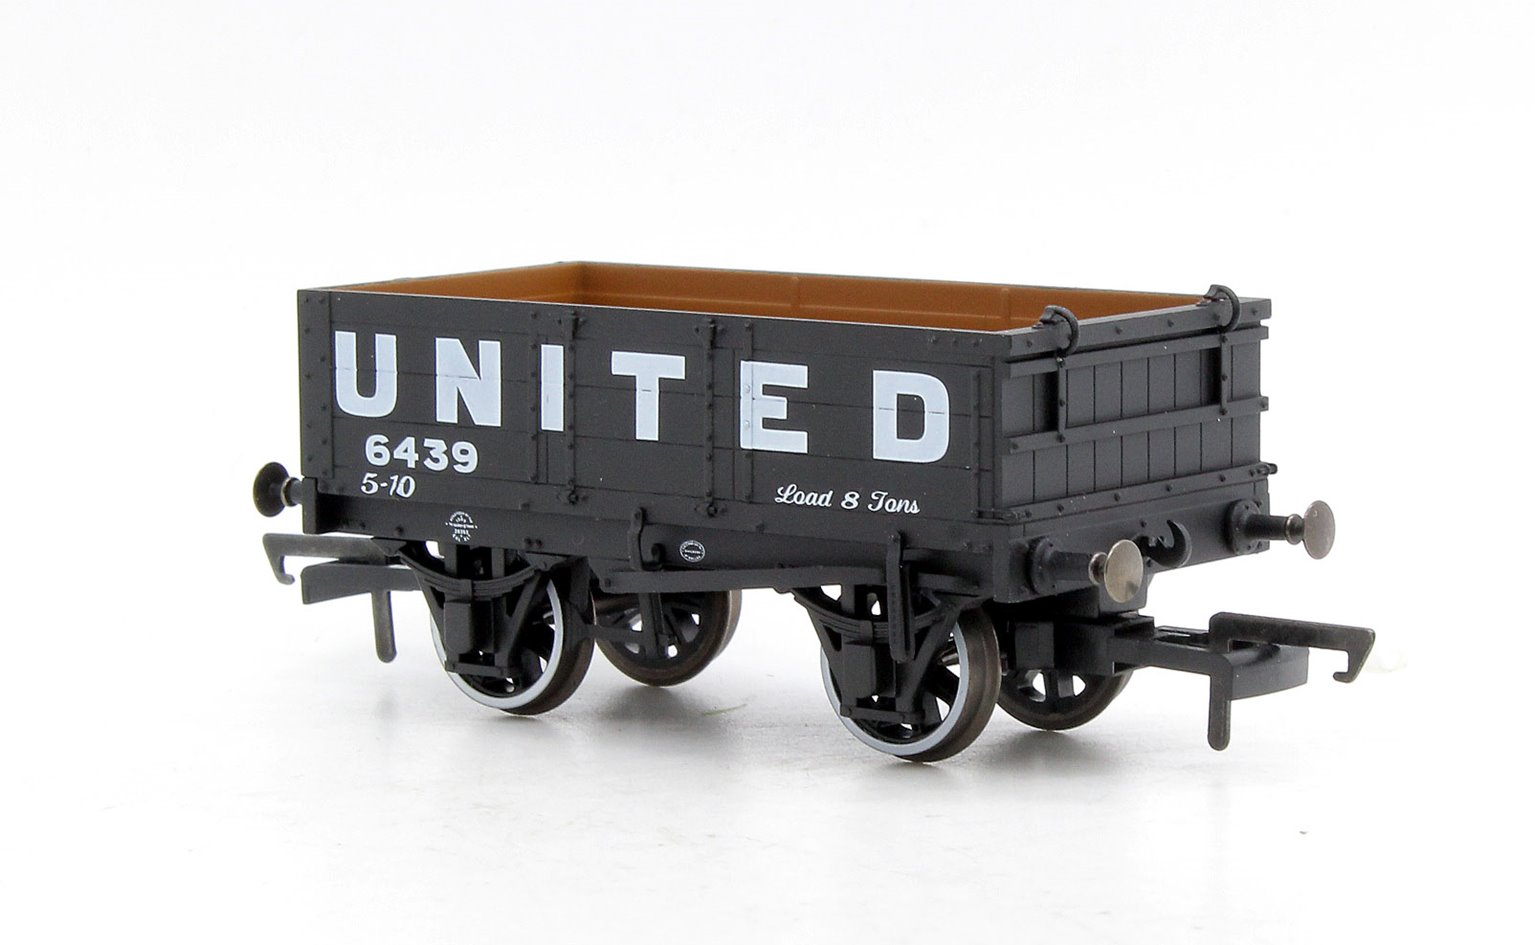 4 Plank Wagon - United Collieries 5439